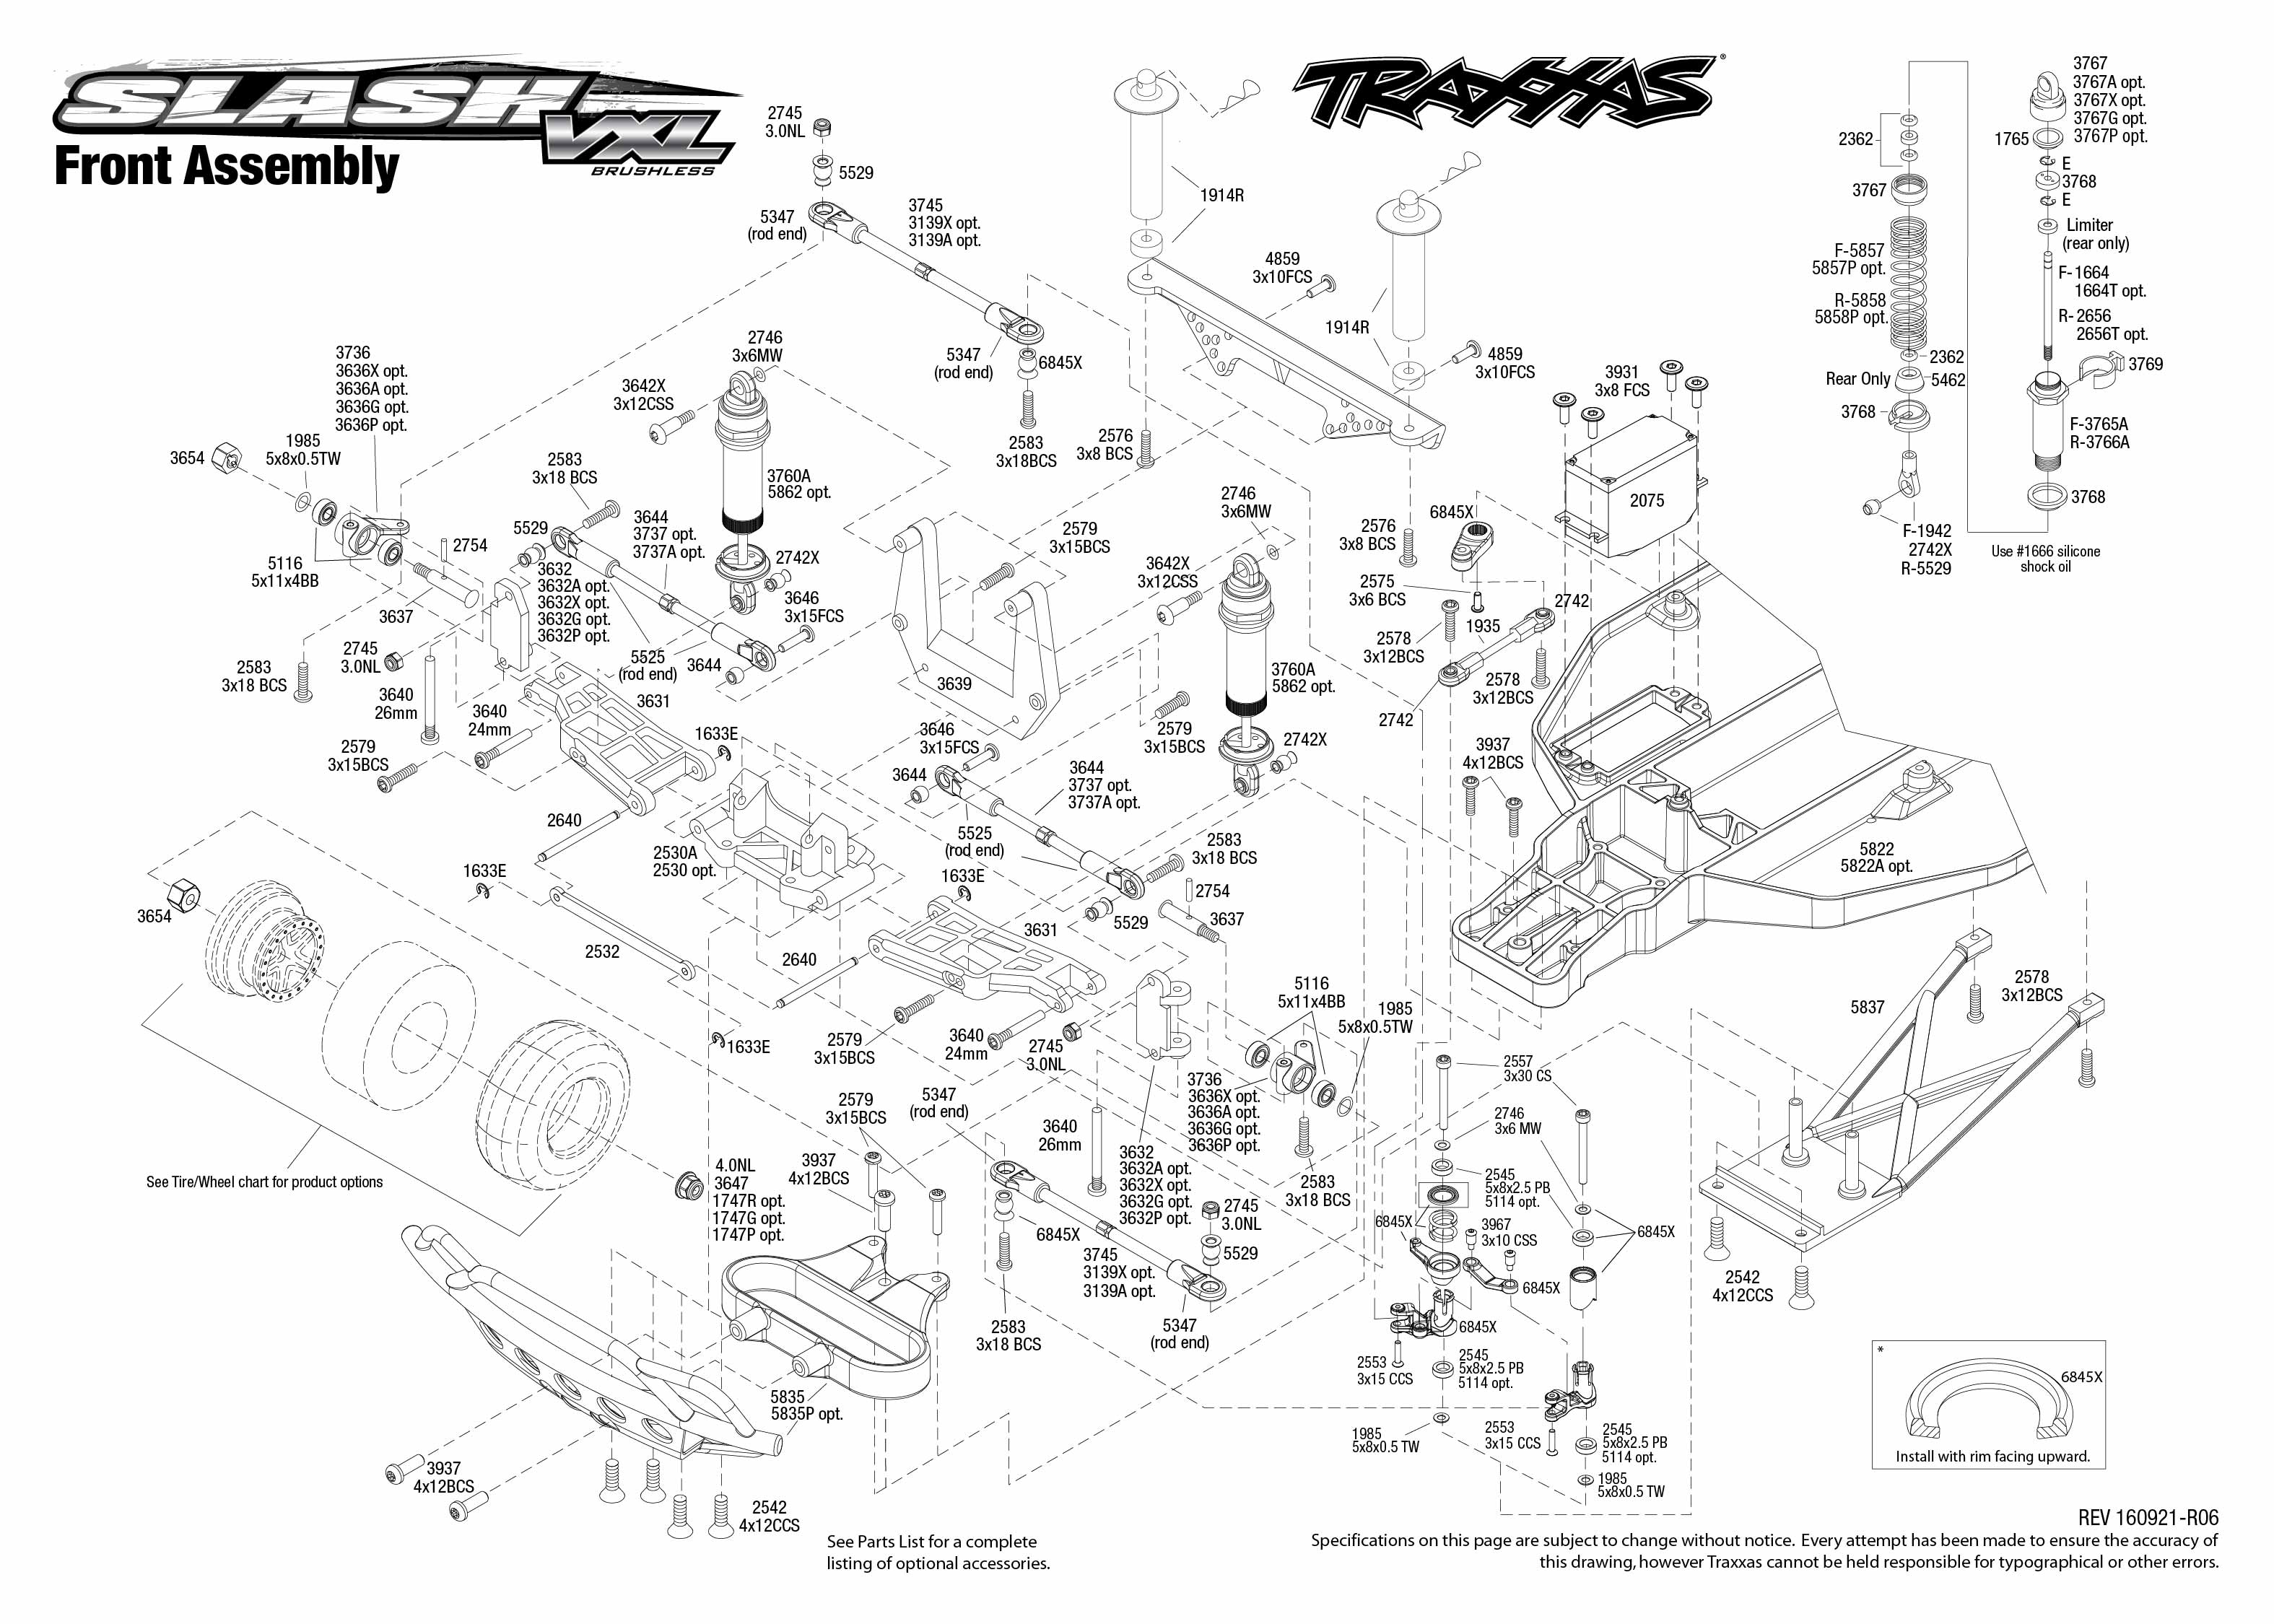 Exploded view: Traxxas Slash 1:10 VXL Brushless TQi LCG